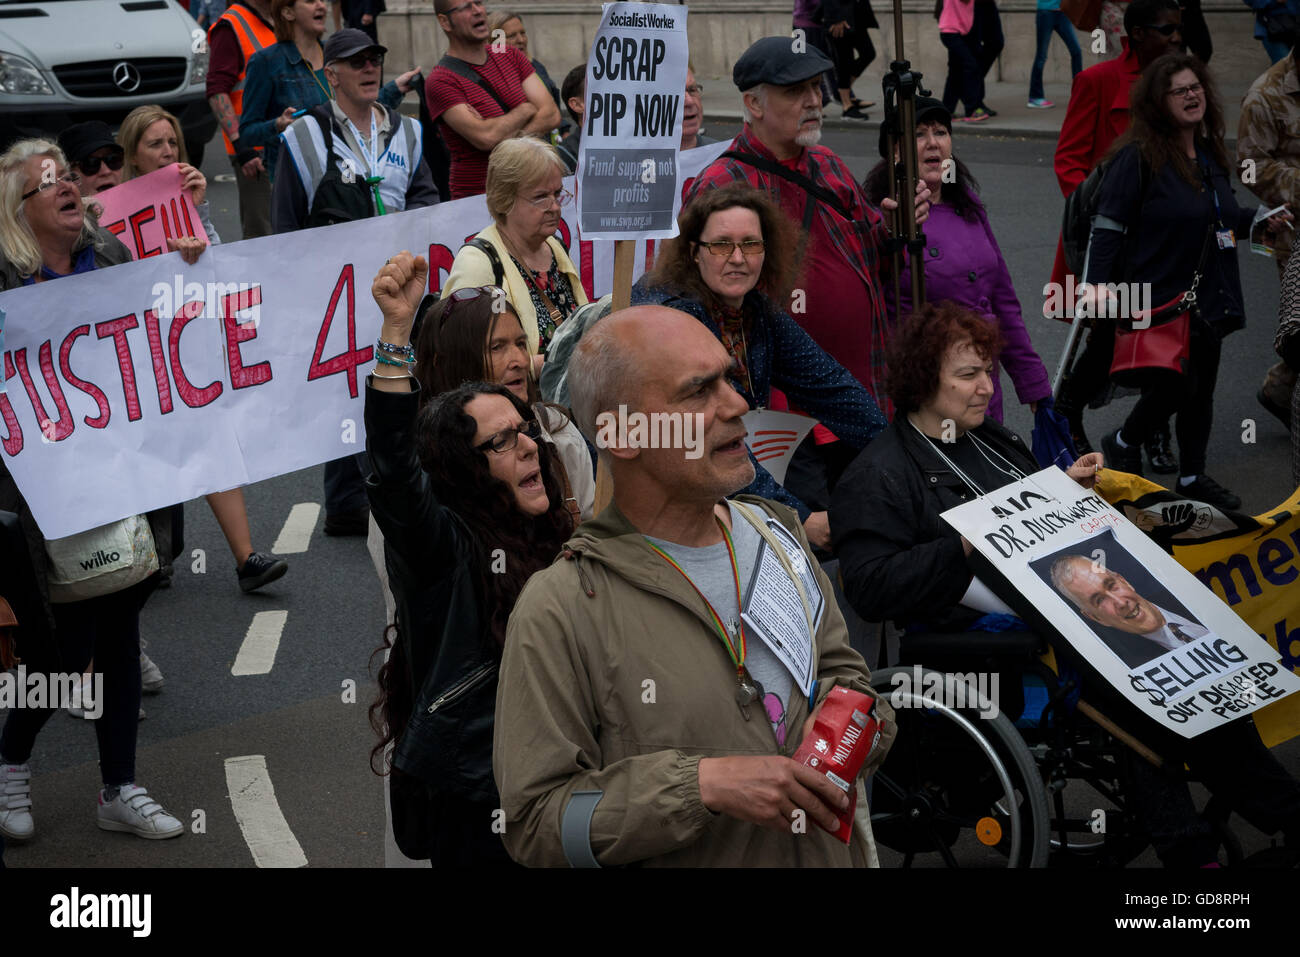 London, UK. 13th July, 2016. Personal independence payment (PIP) is a benefit for people who need help taking part - Stock Image